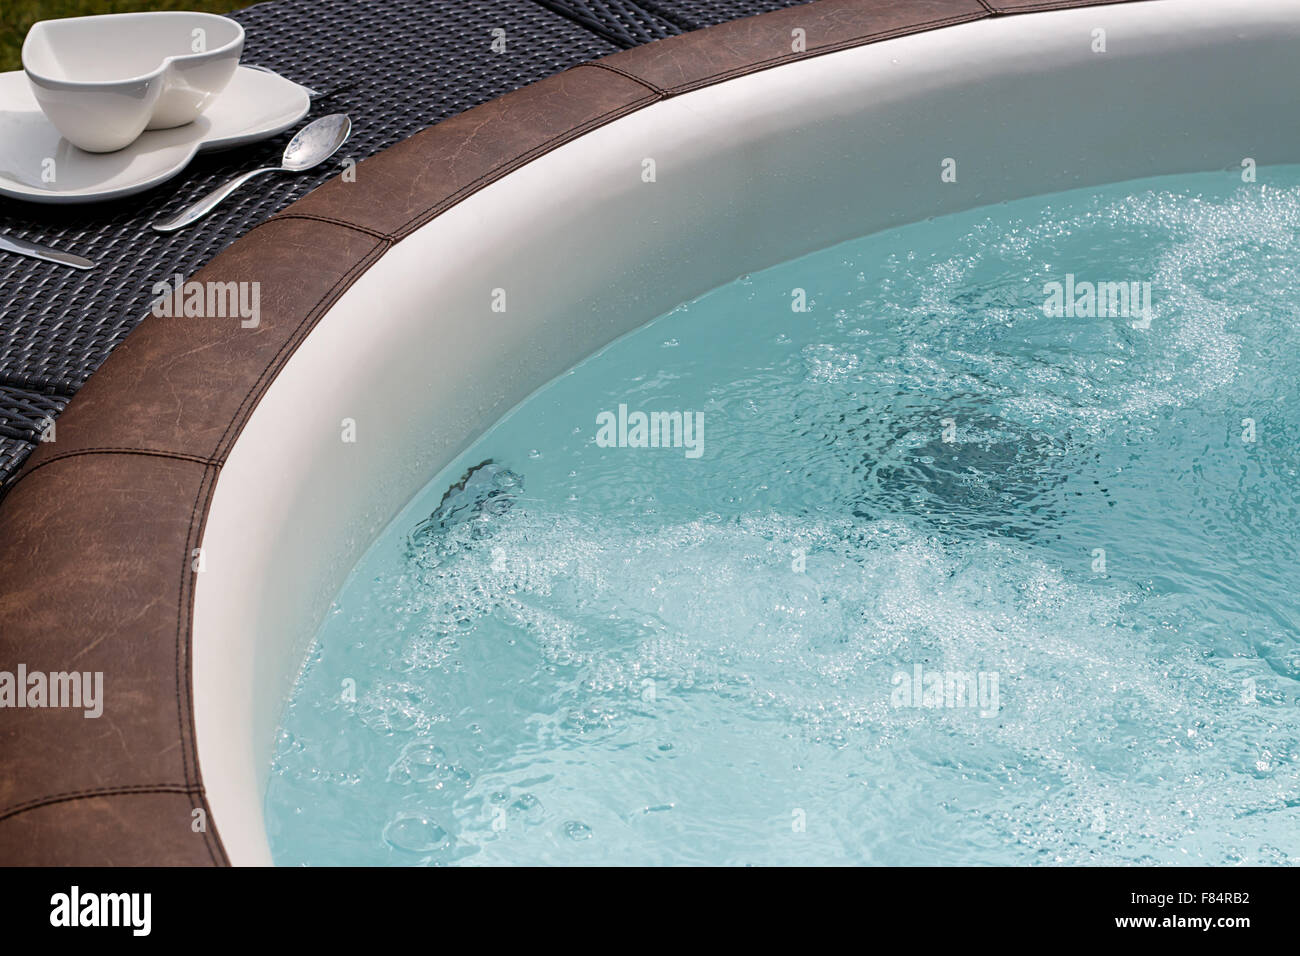 Luxurious standalone hot tub or jacuzzi with hot bubbling water Stock Photo